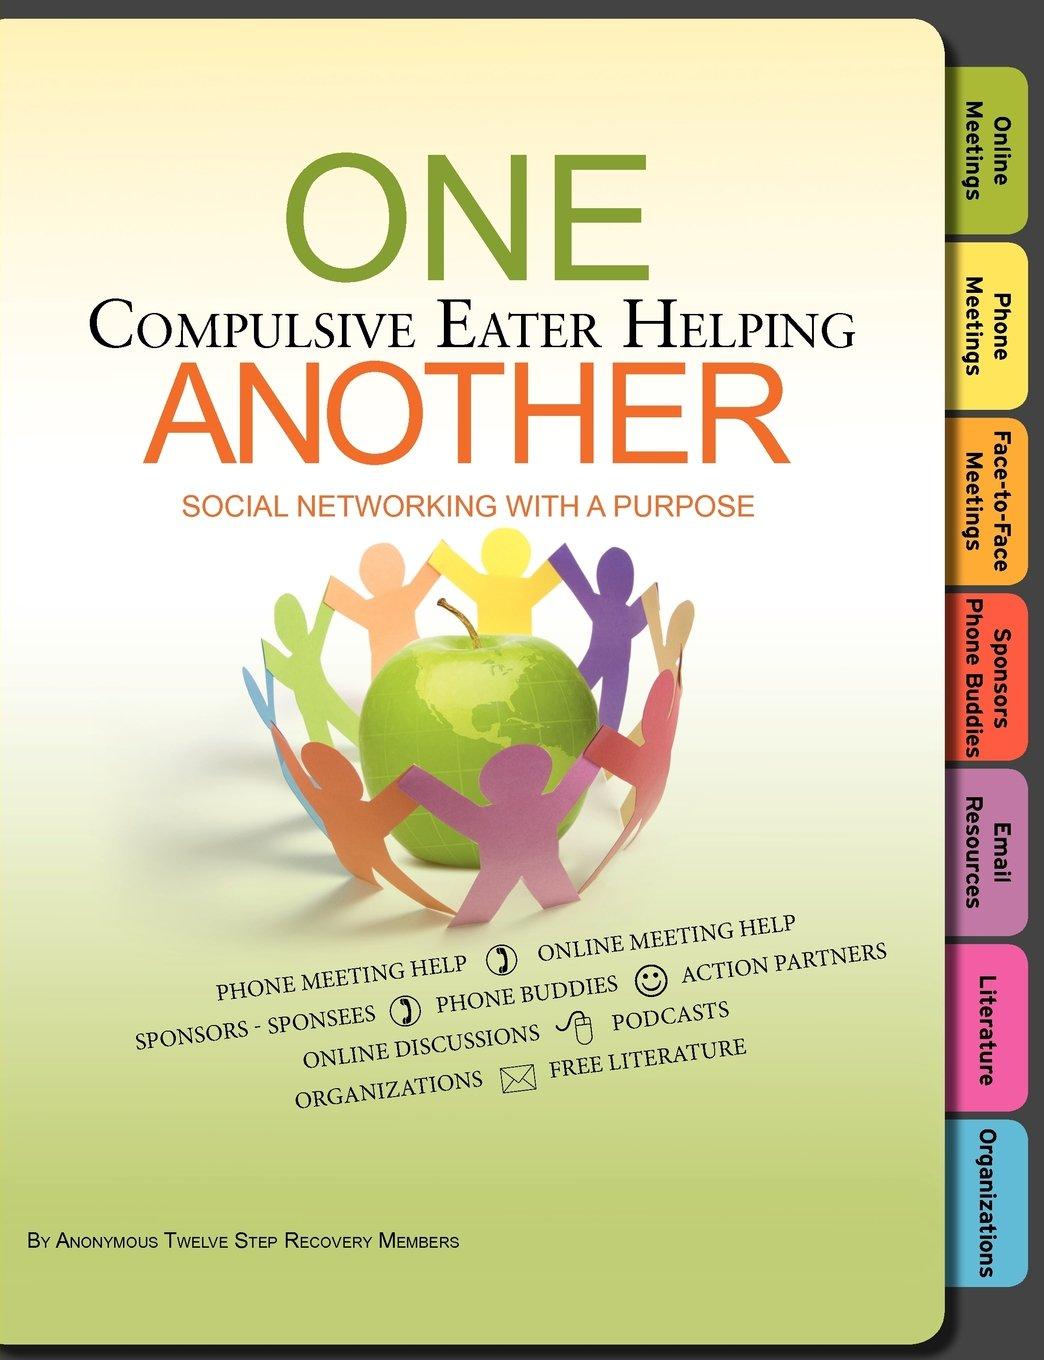 One Compulsive Eater Helping Another: Free Phone Meeting Help, Online Meeting Help, Sponsors-Phone Buddies, Face-to-Face Meetings, Online Discussions, ... Free Literature, Plans of Eating and more pdf epub